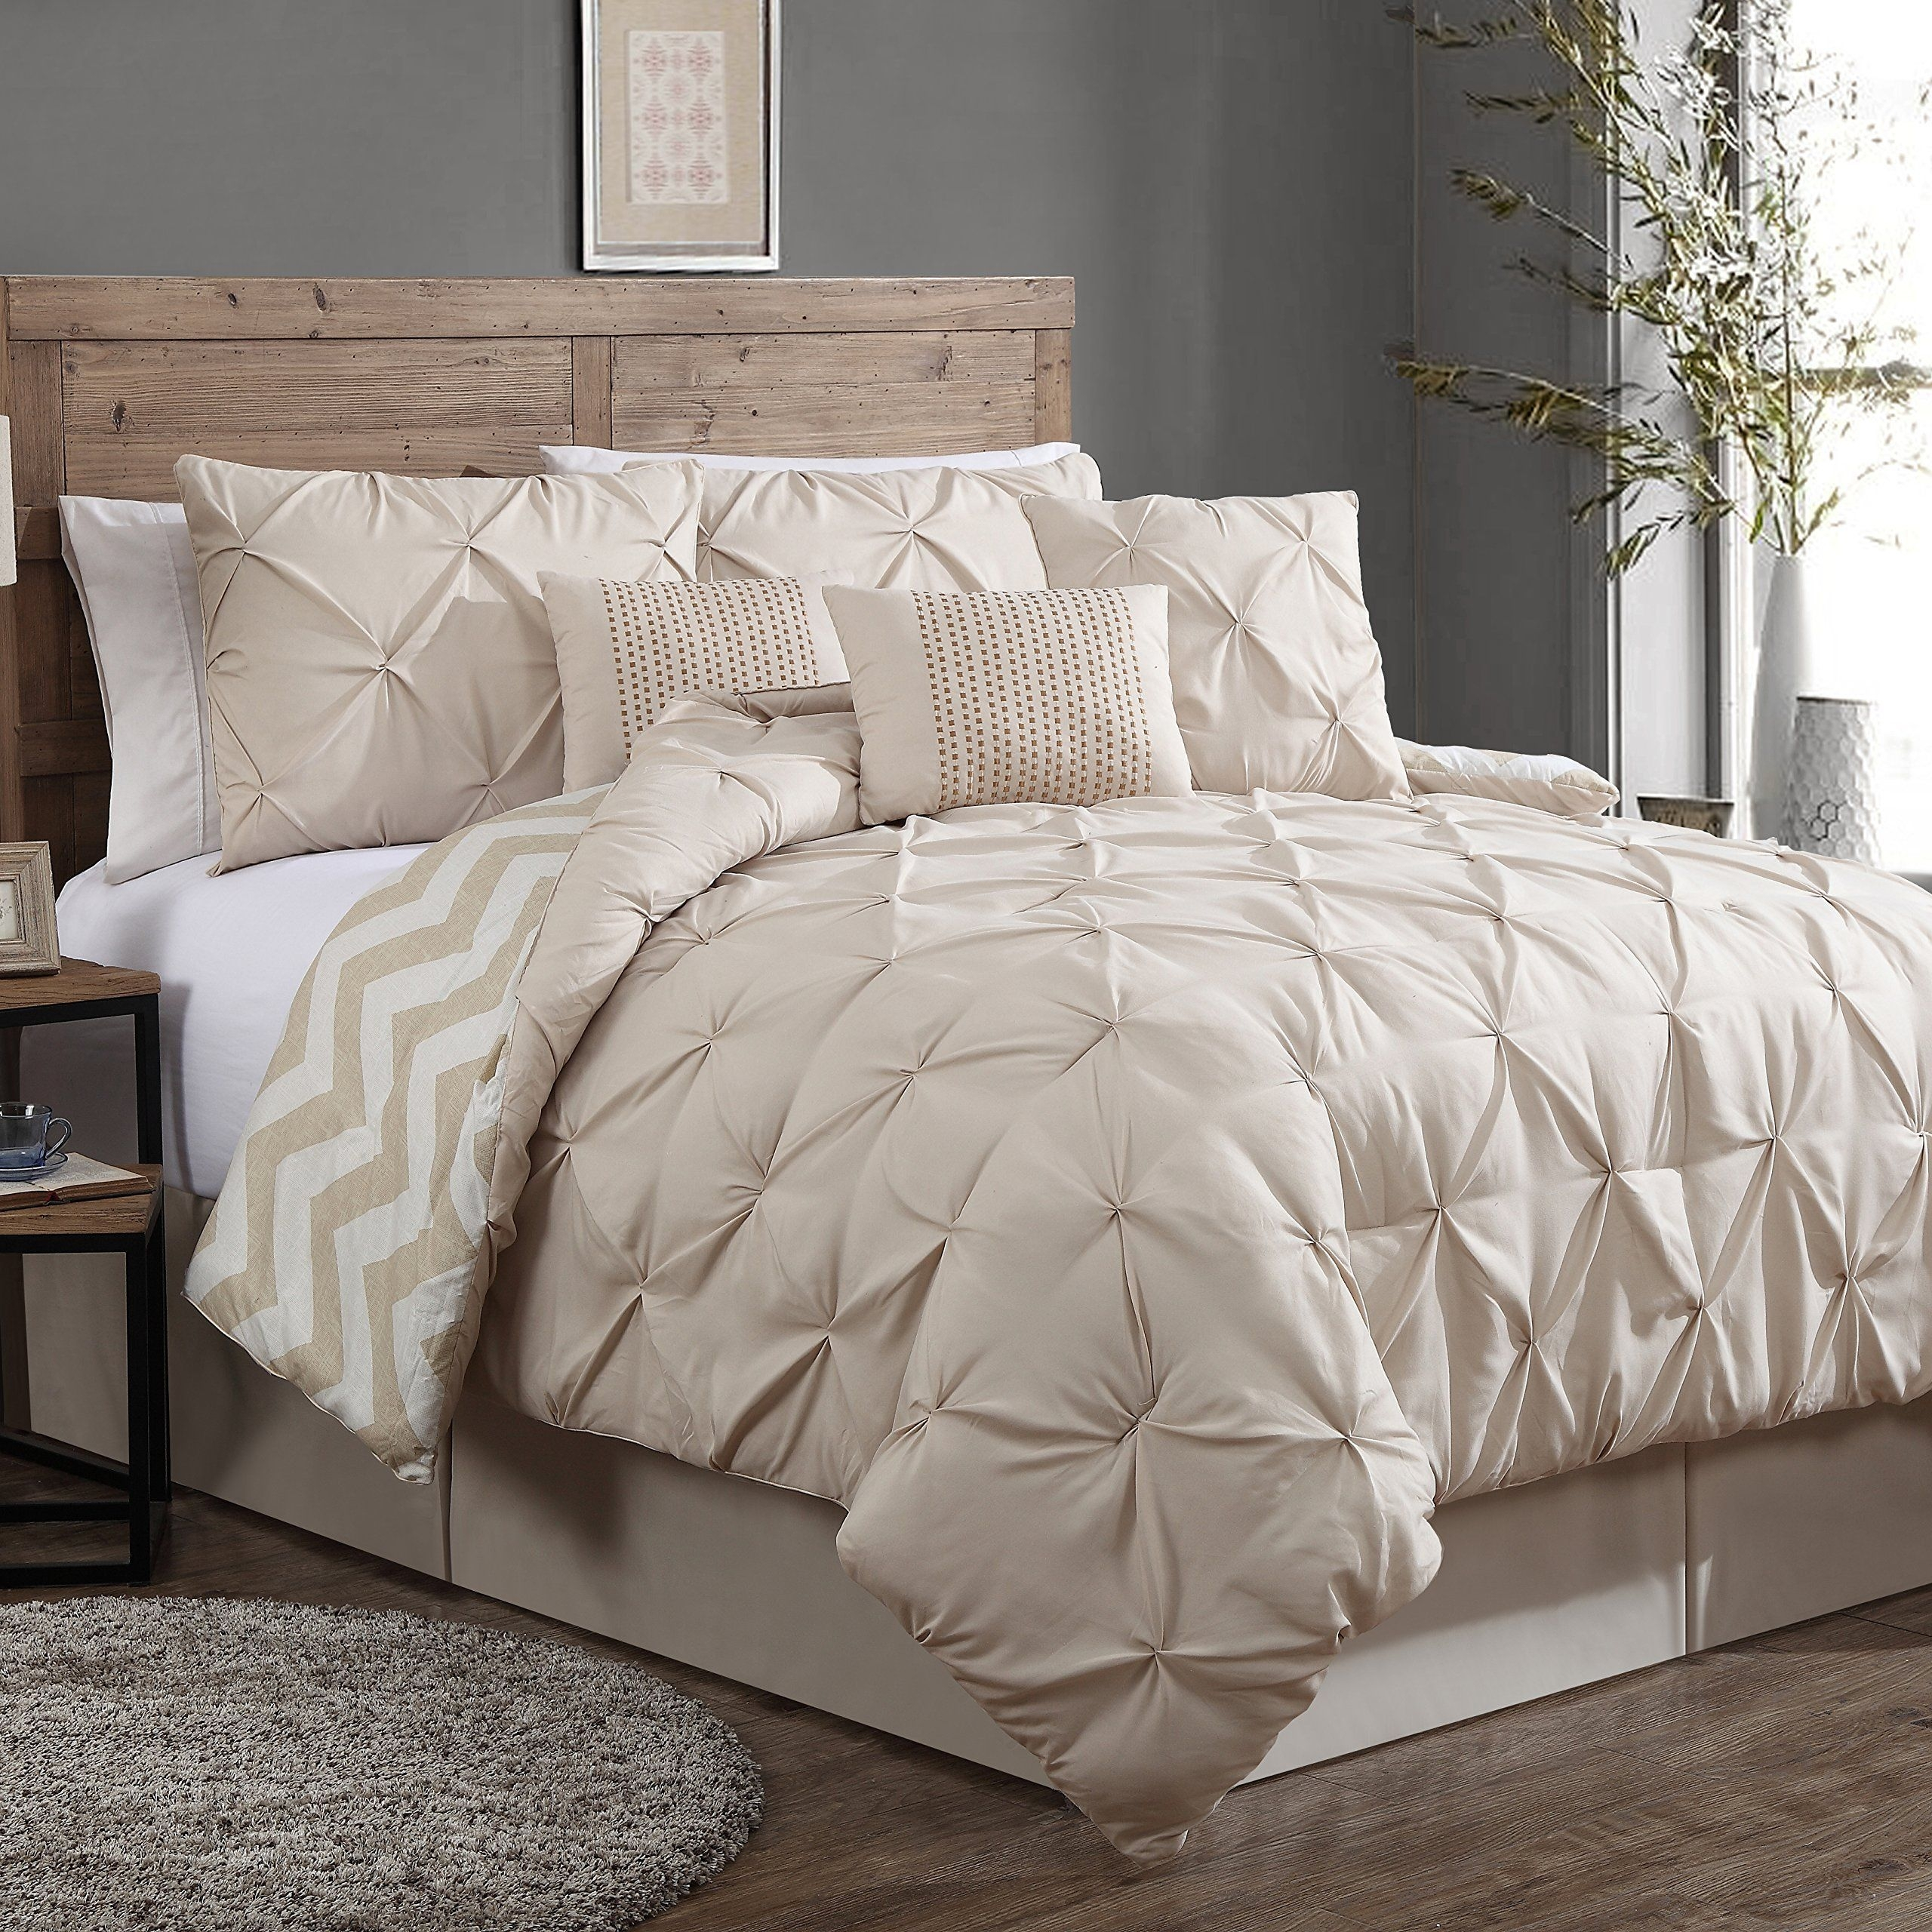 Amazon  Geneva Home Fashion 8Piece Ella Pinch Pleat Comforter Set Queen Taupe